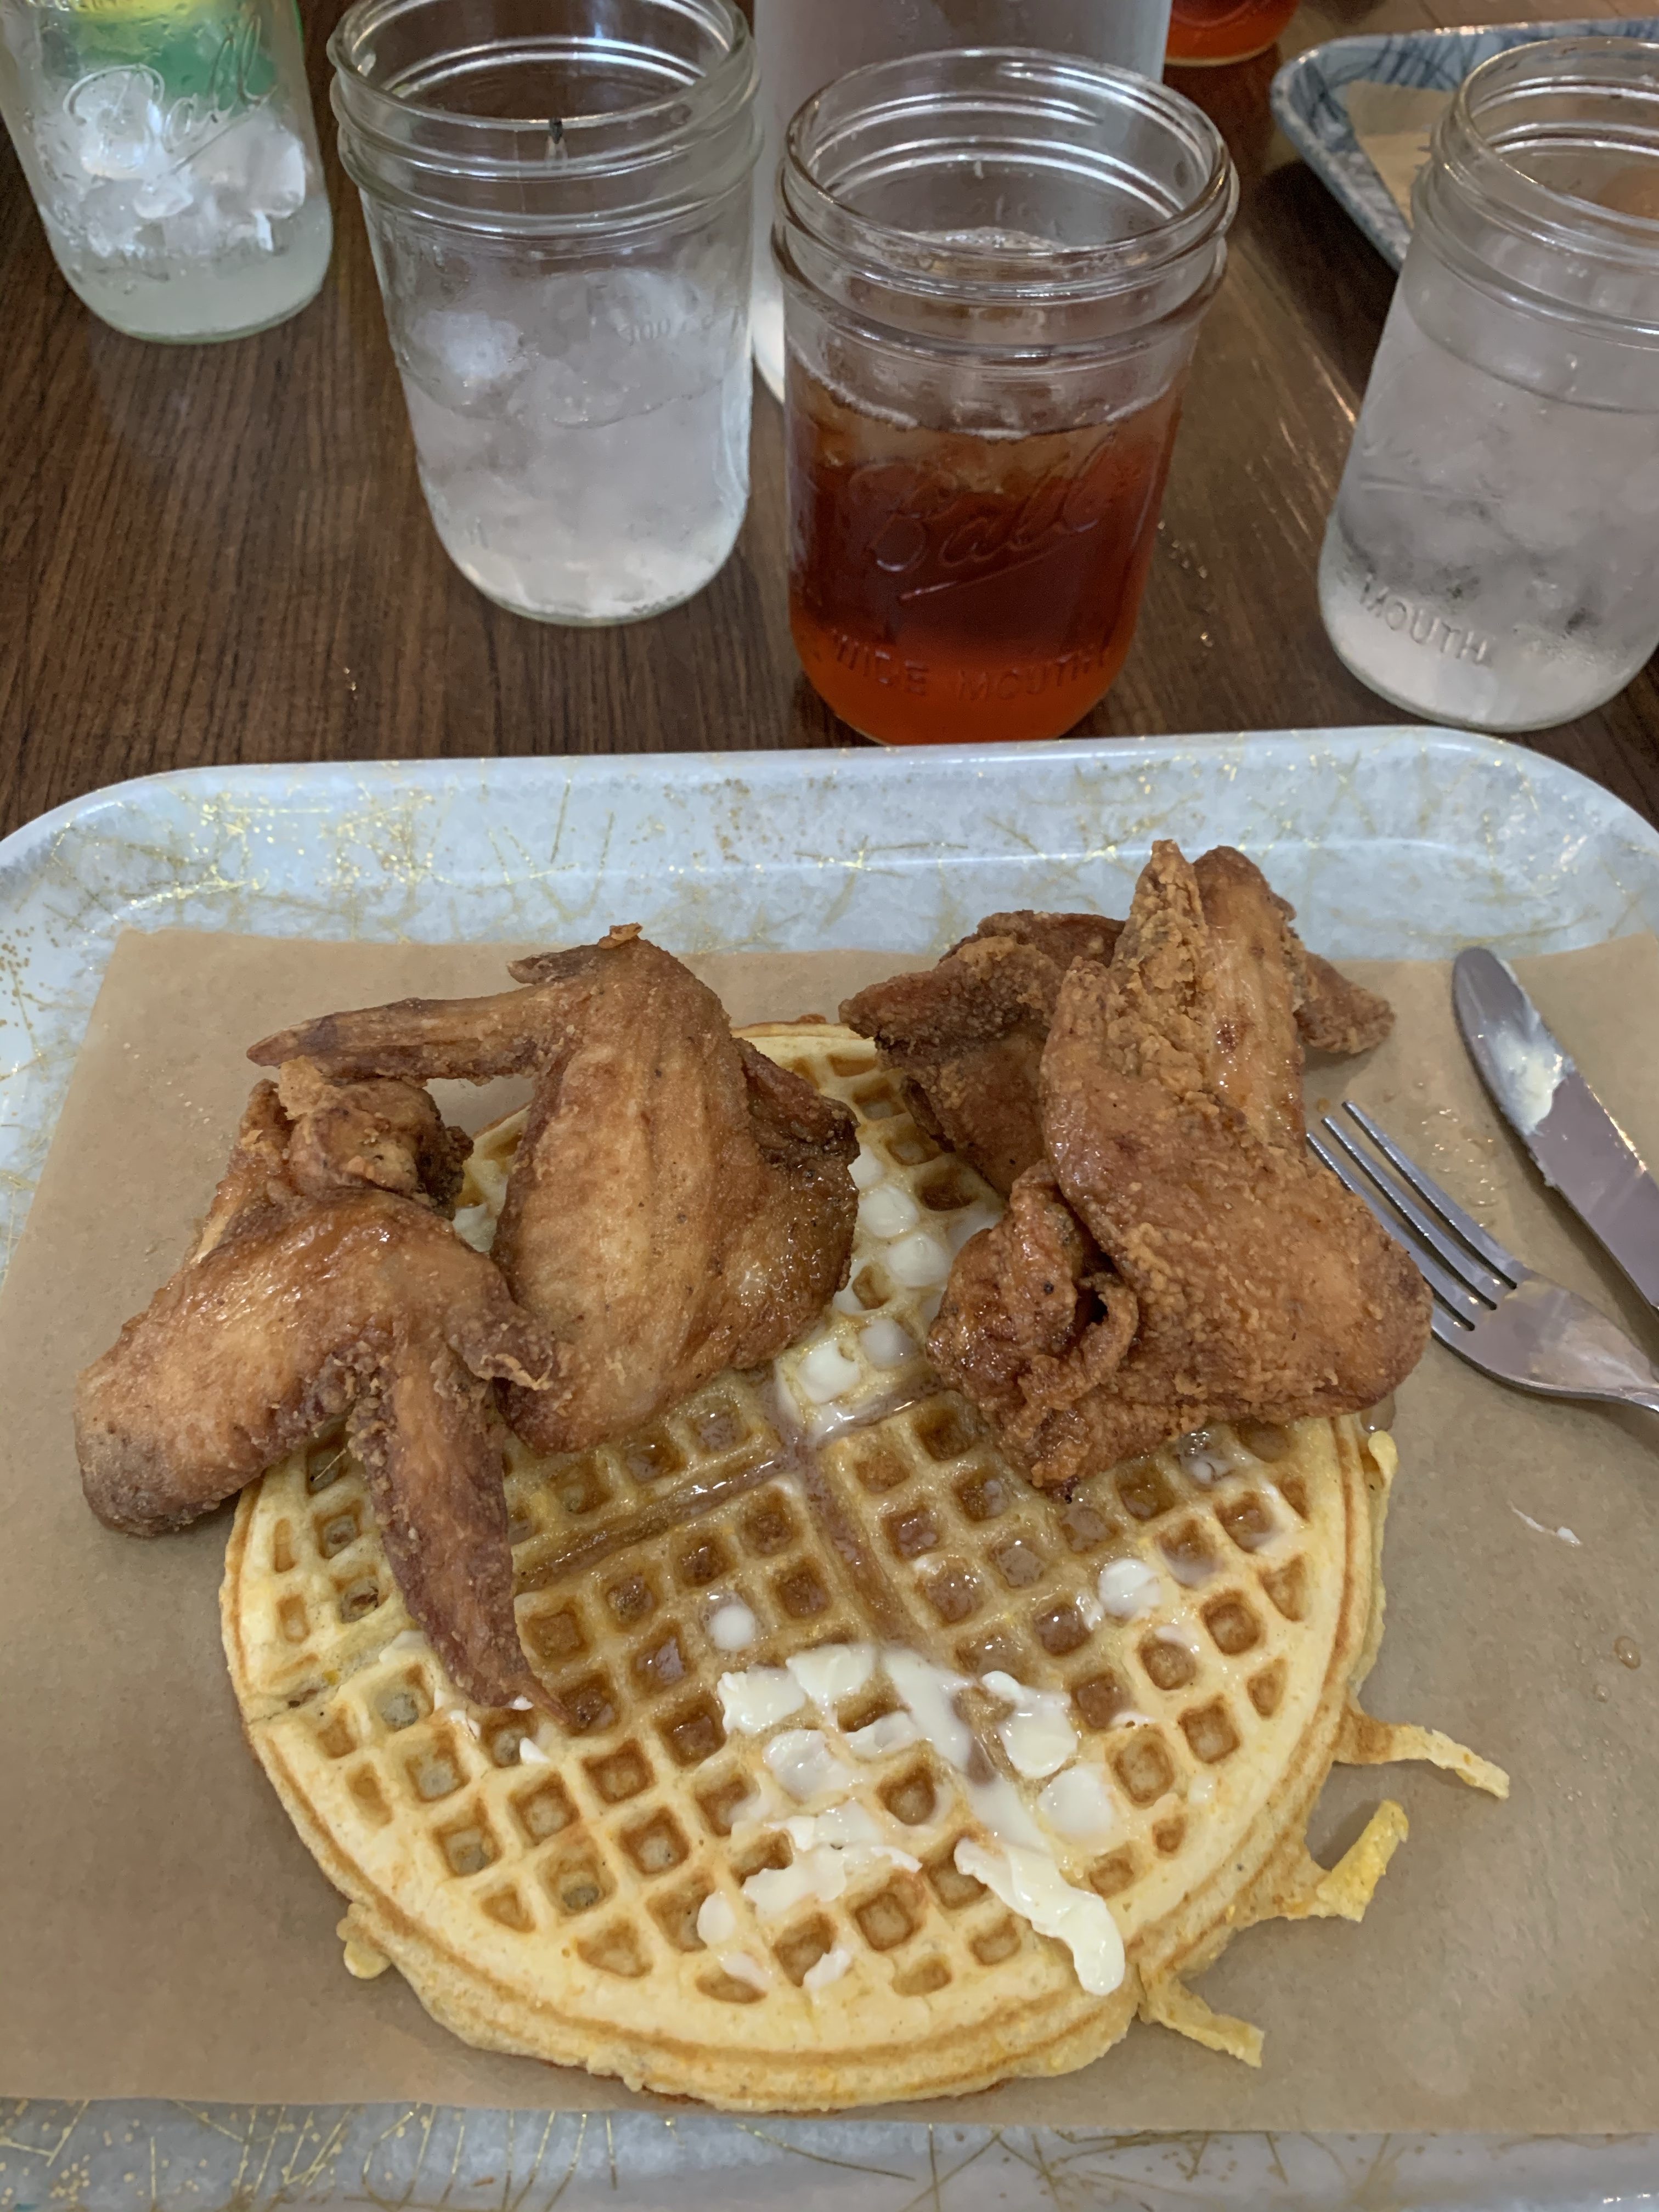 Four fried chicken wings and a southern style cornmeal waffle with butter and spiced maple syrup